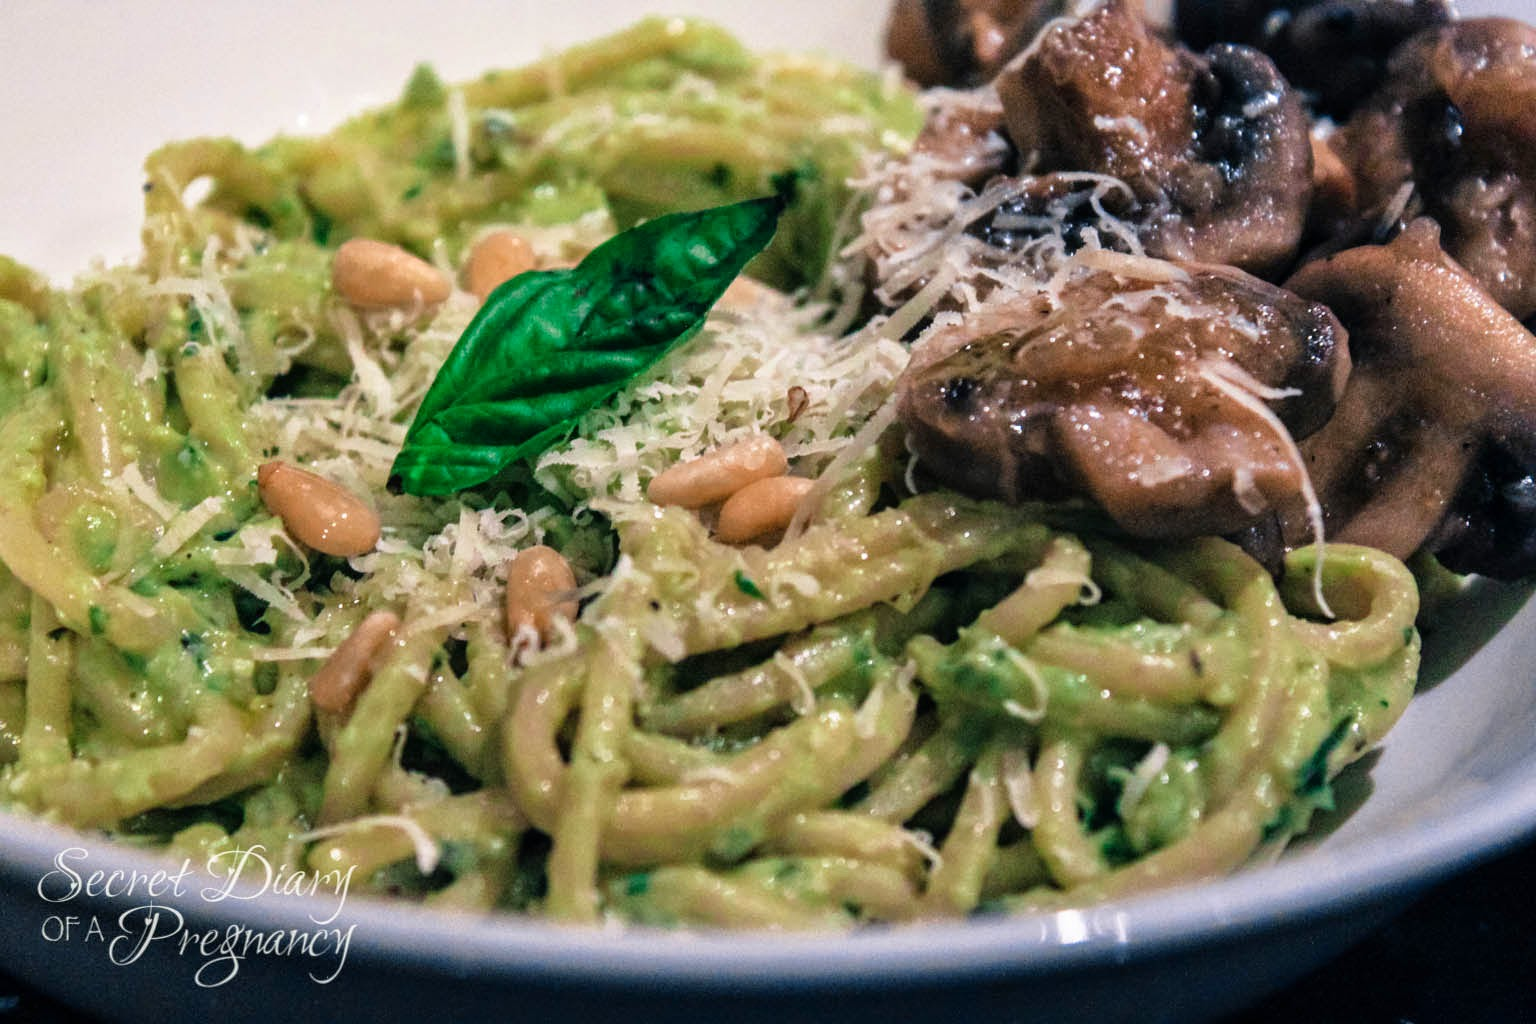 creamy avocado pesto with spaghetti